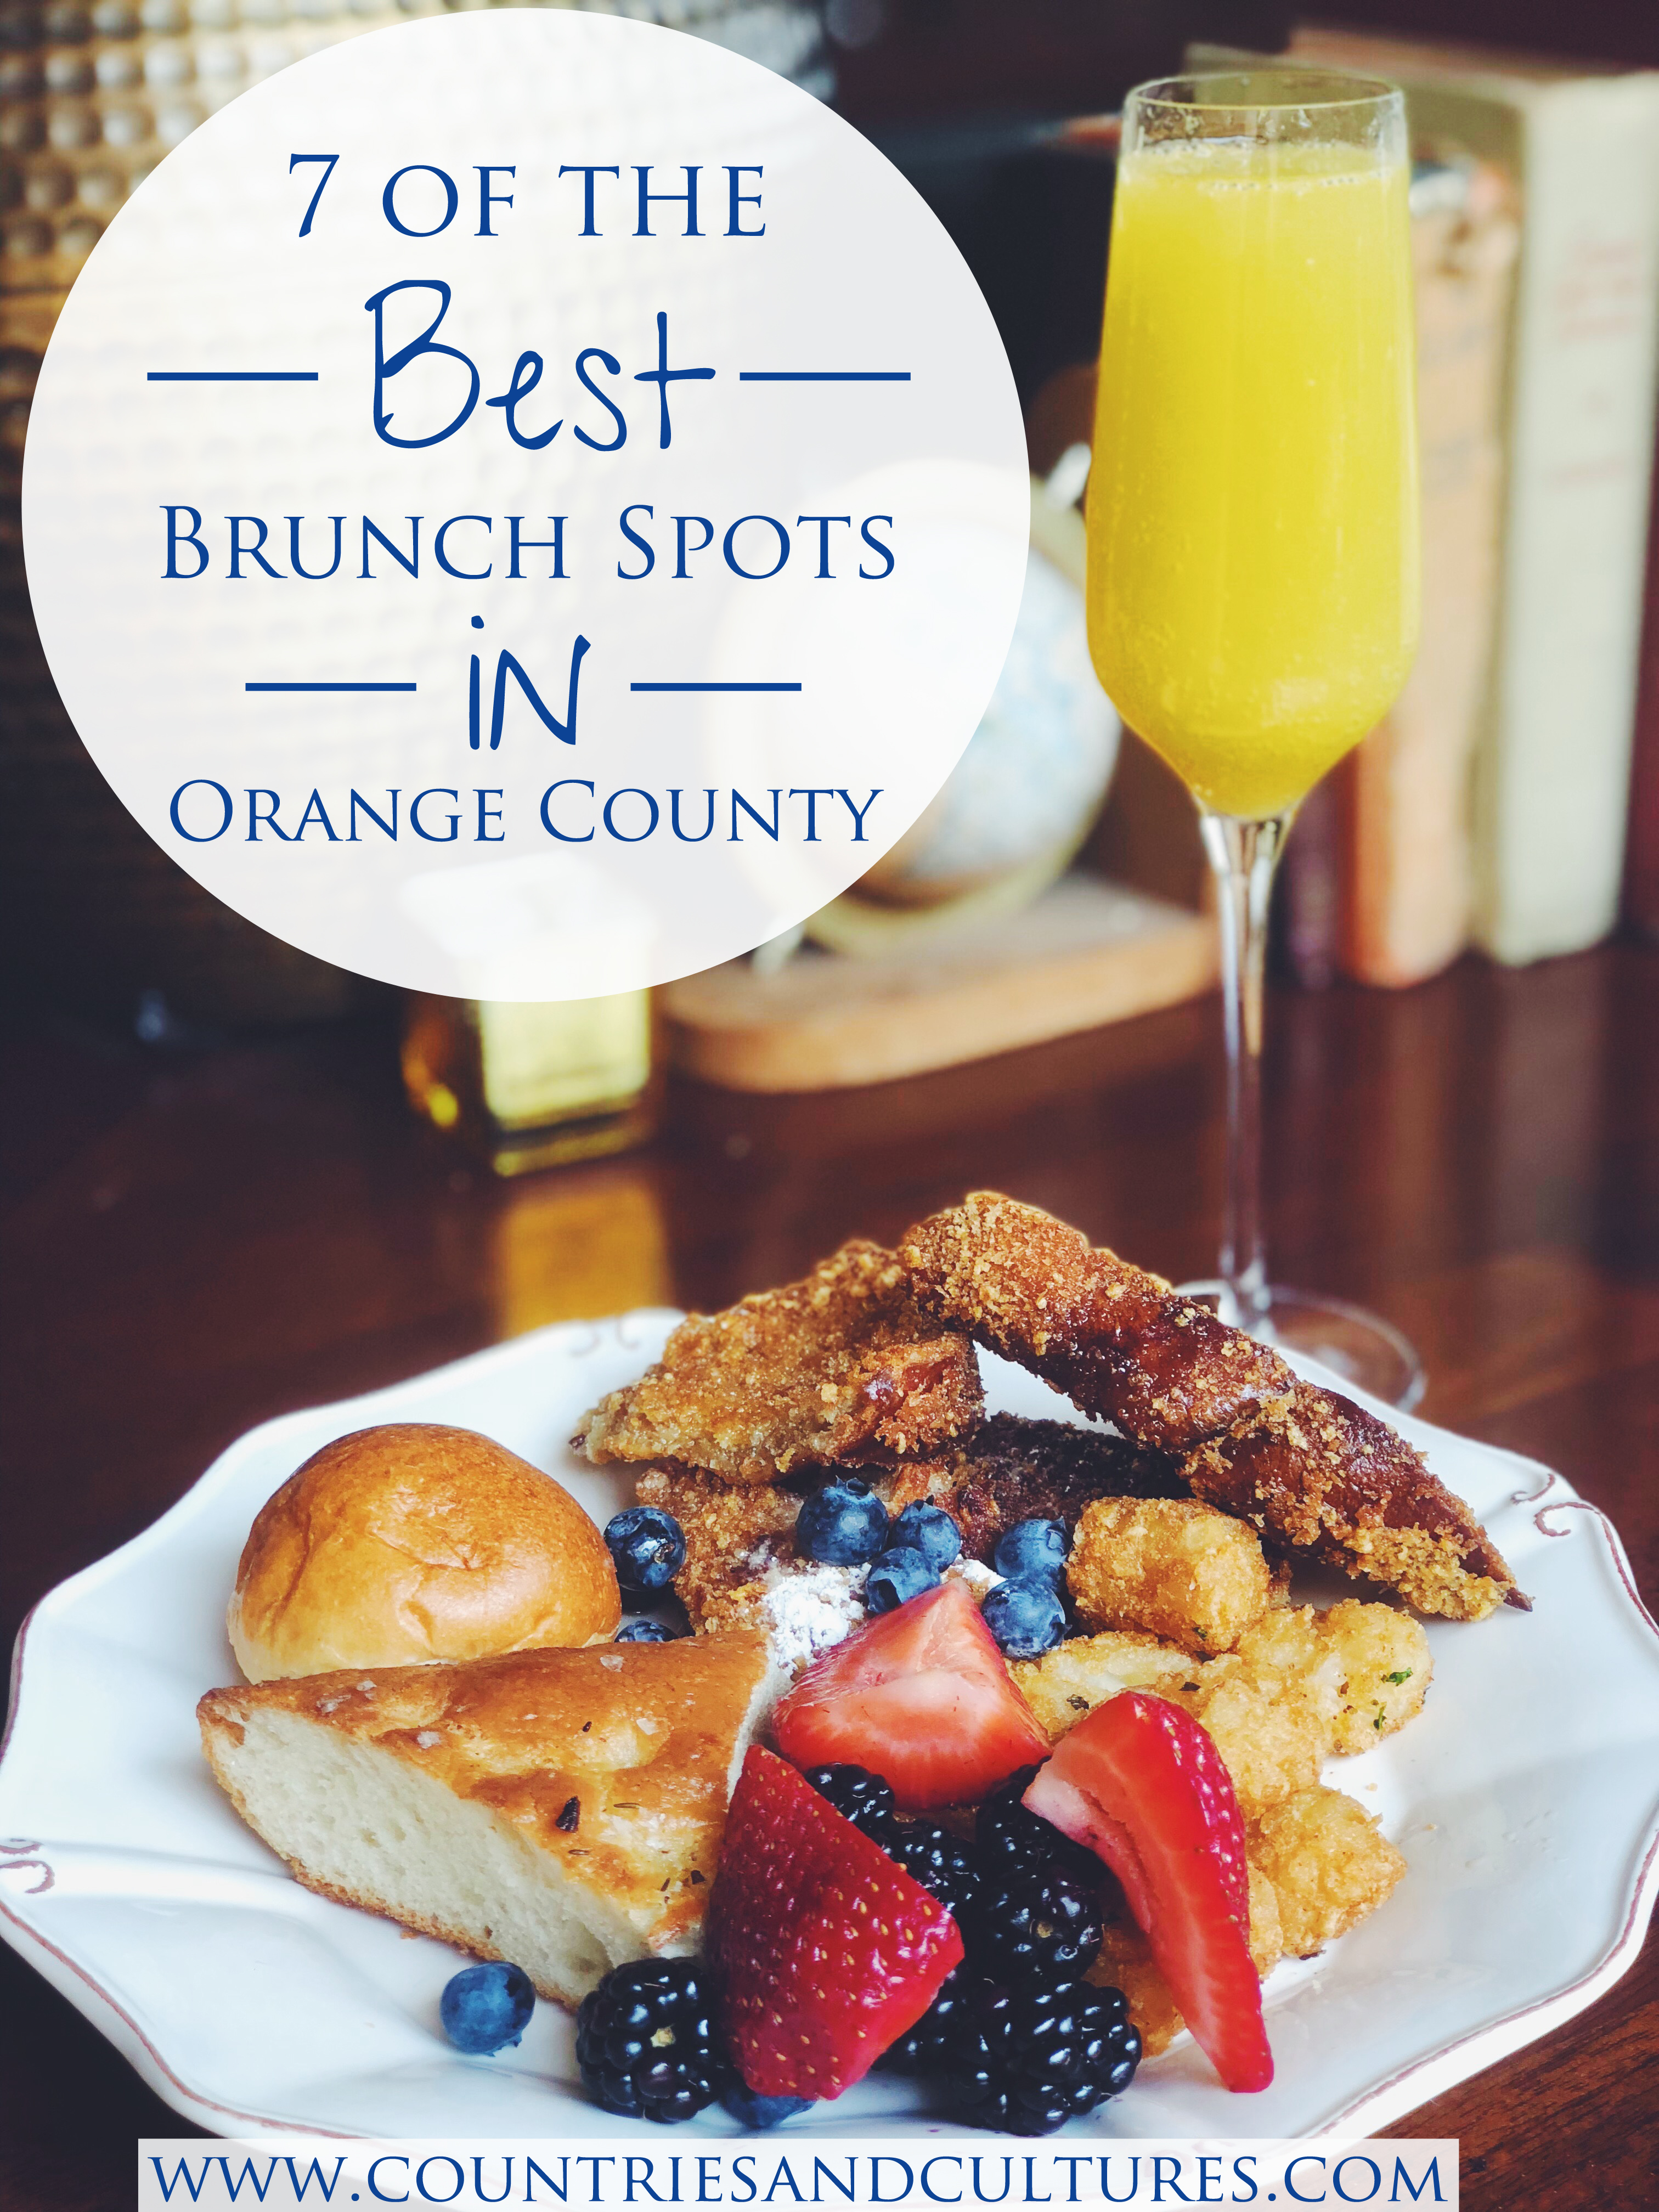 Surprising 7 Of The Best Brunch Spots In Orange County Countries Best Image Libraries Thycampuscom